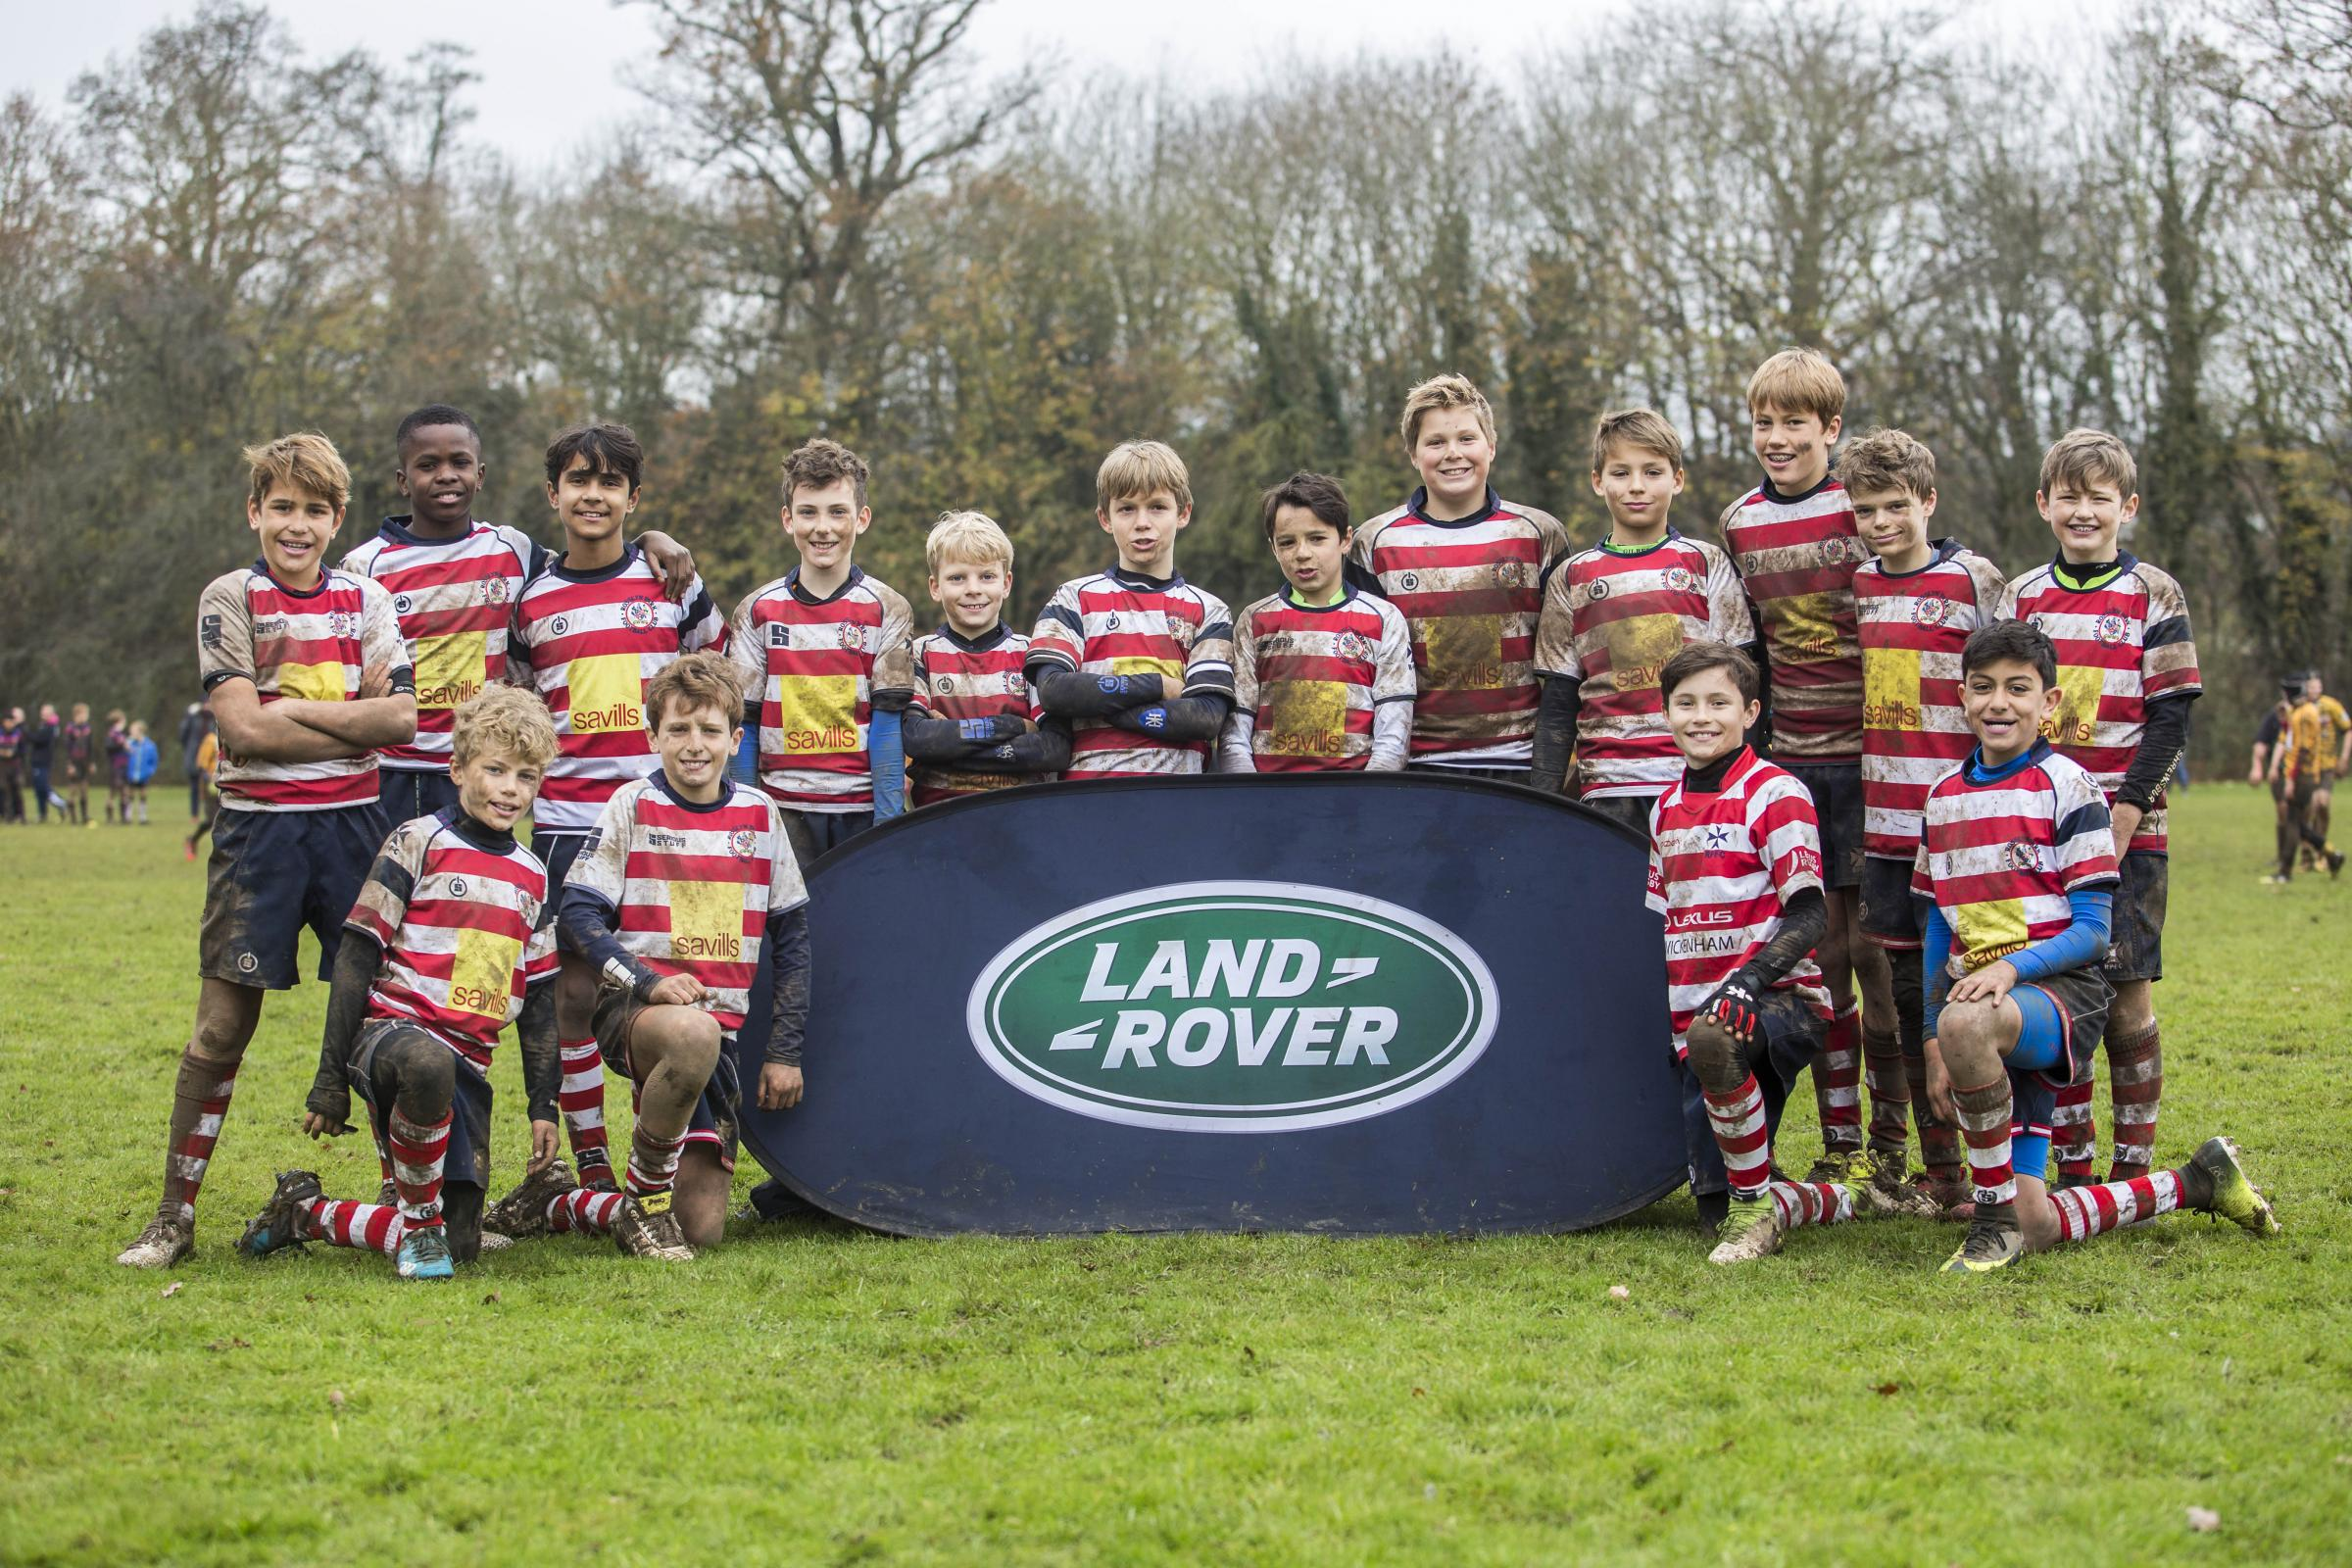 Rosslyn Park will now take their place at Twickenham for the Aviva Premiership Rugby final